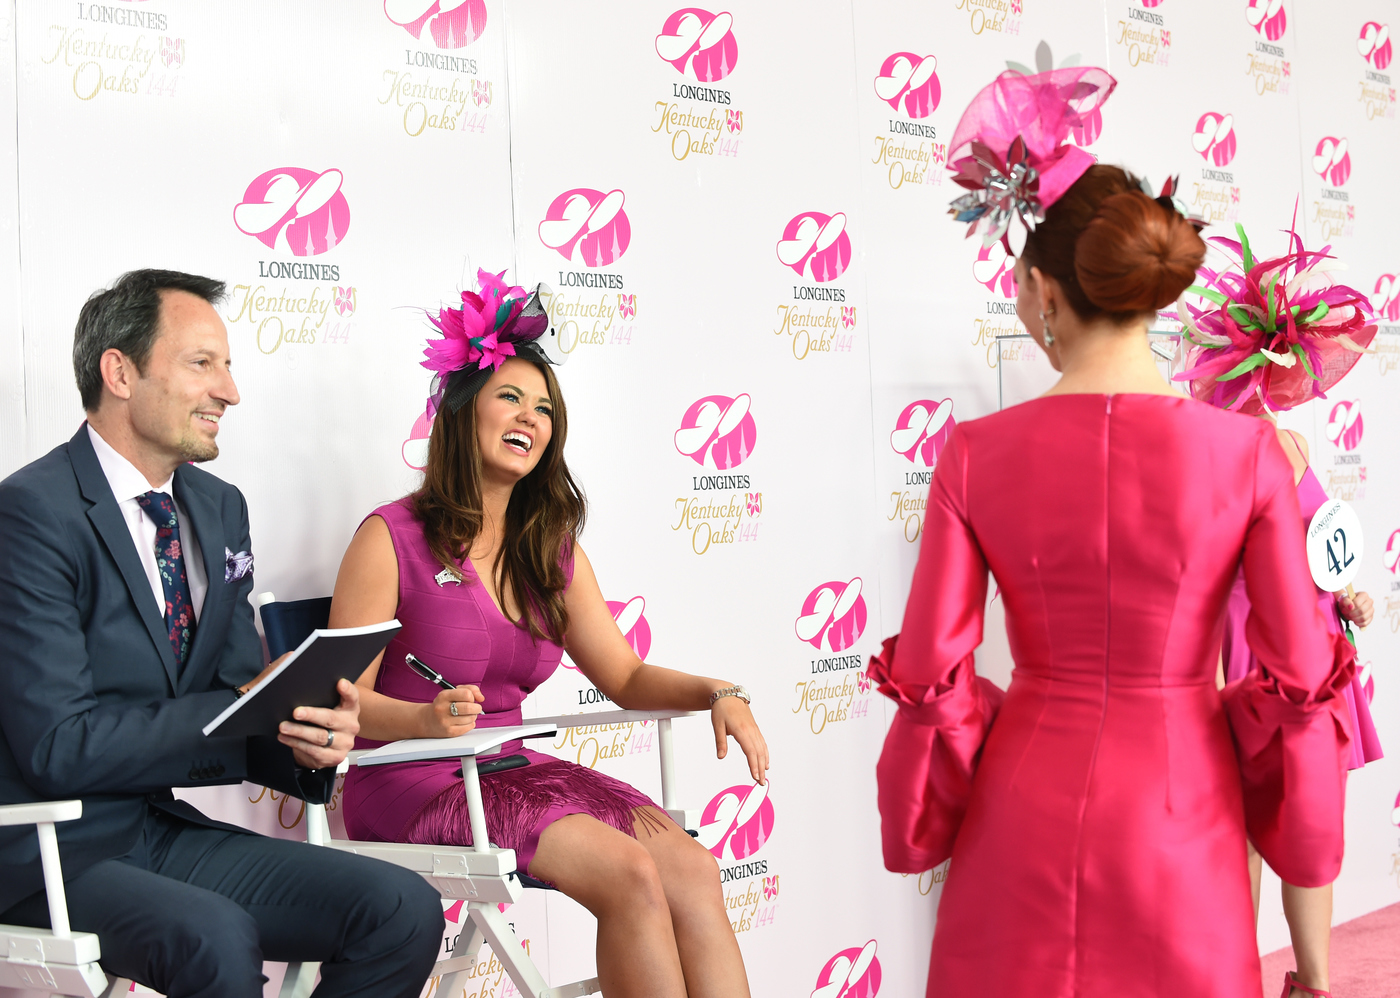 Longines Flat Racing Event: Monomoy Girl's Longines Kentucky Oaks Victory celebrated  at Churchill Downs  1